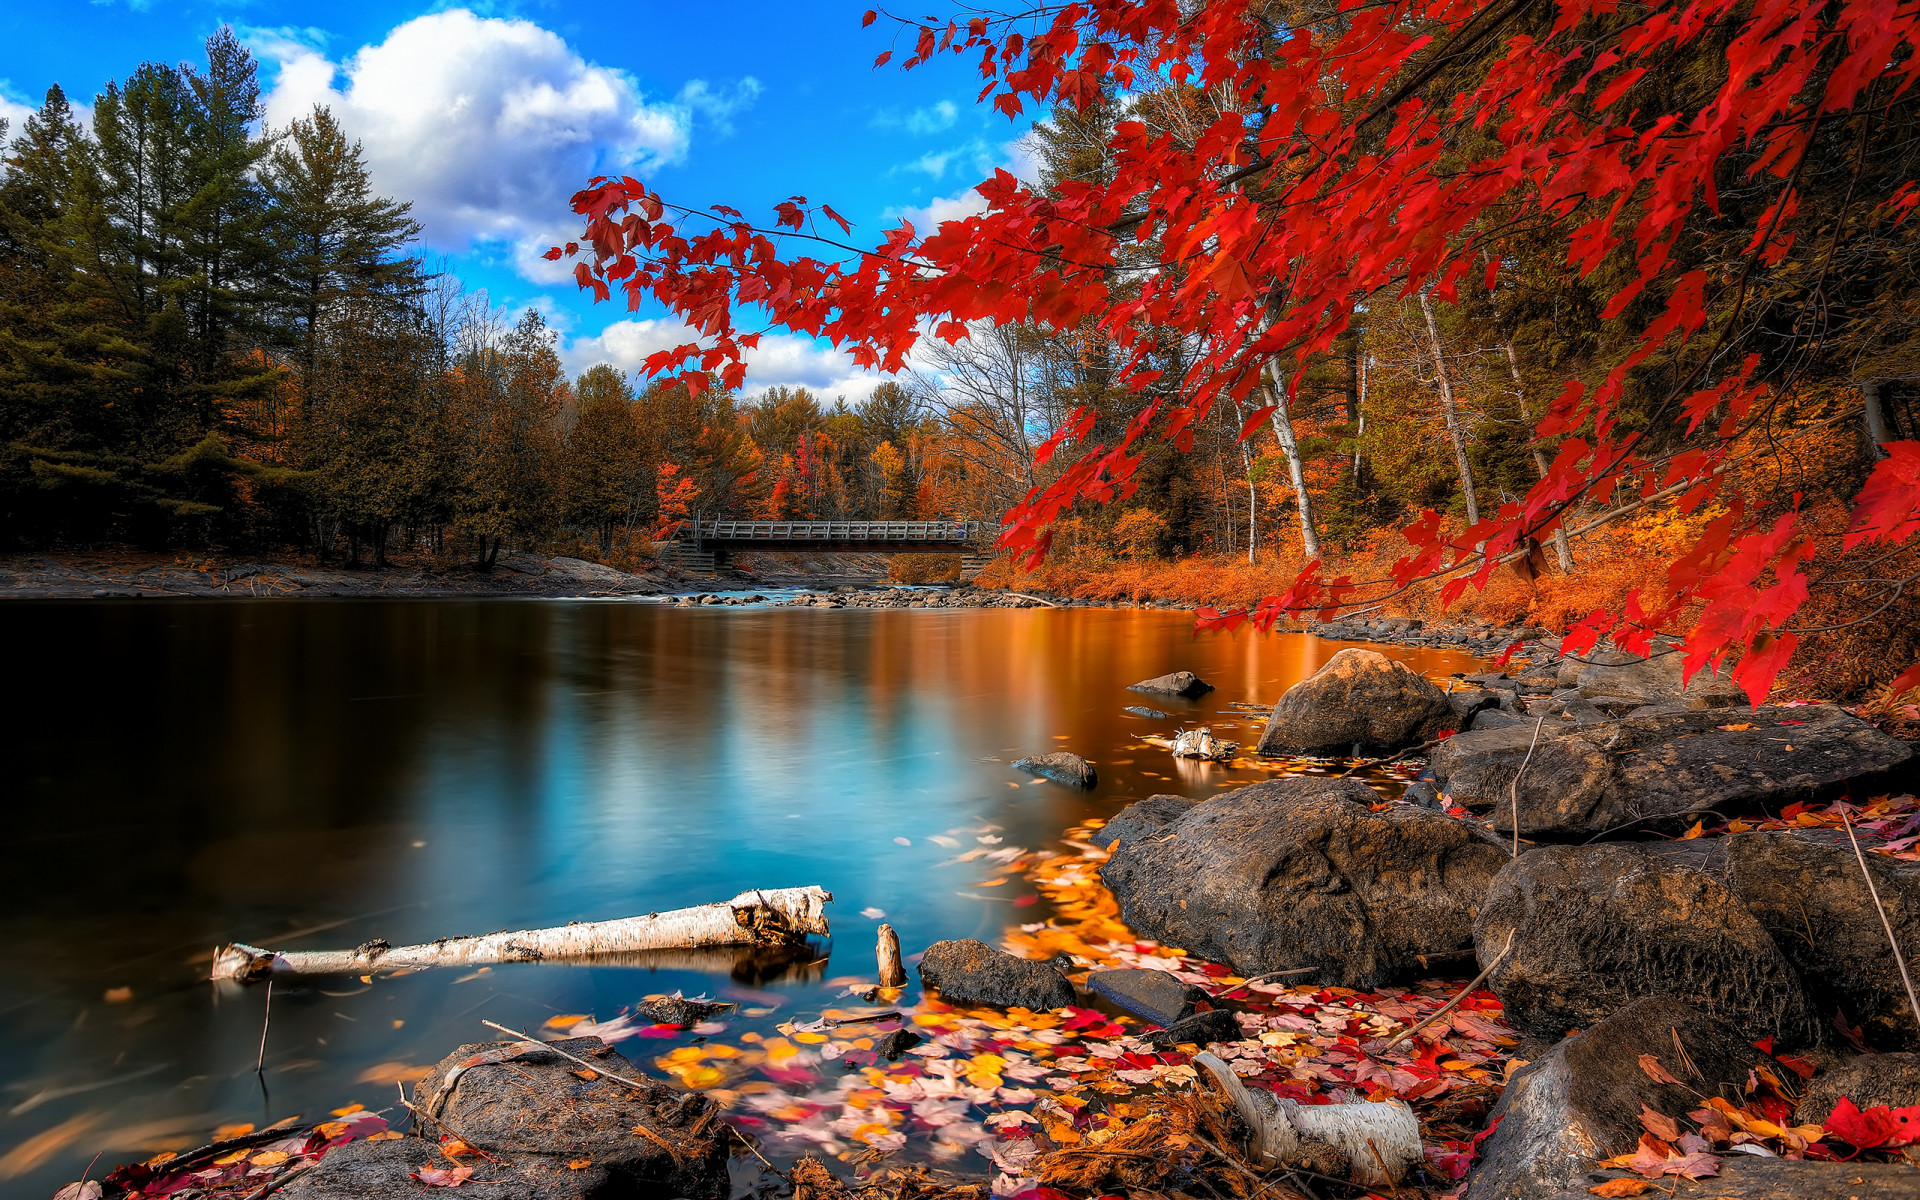 Nature Seasons Autumn Autumn landscape   red leaves 035082 jpg 1920x1200